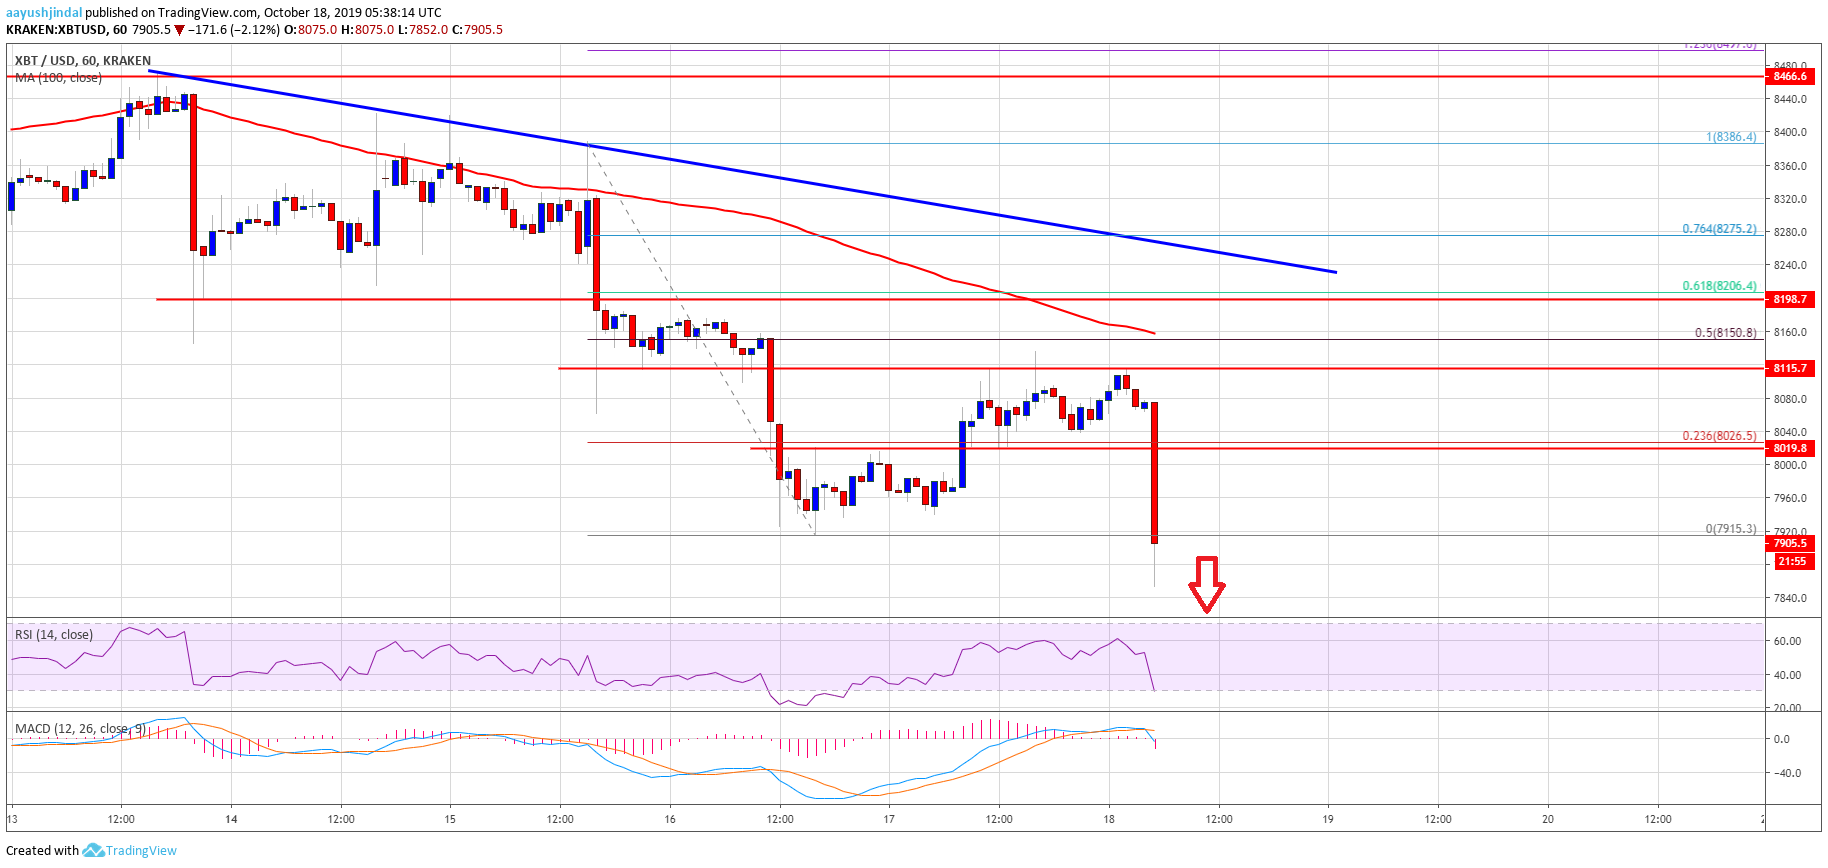 Bitcoin (BTC) Price Accelerating Losses Below $8K, $7.5K Very Likely